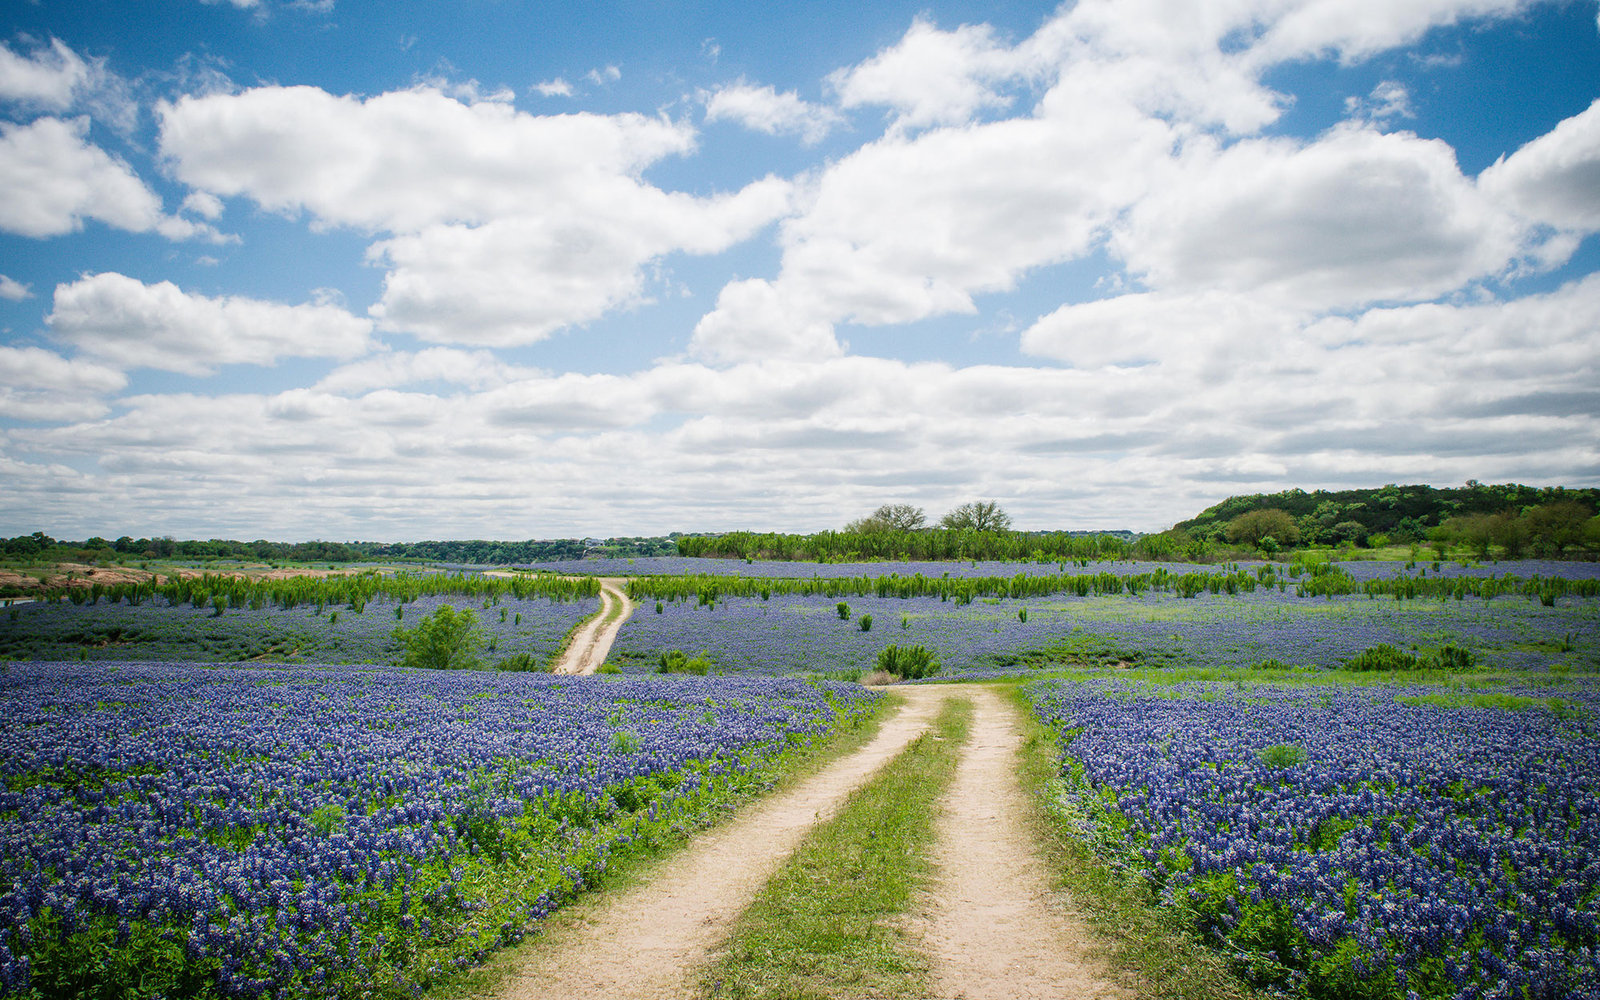 highway through the flower feilds on the Bluebonnet Trail, TX